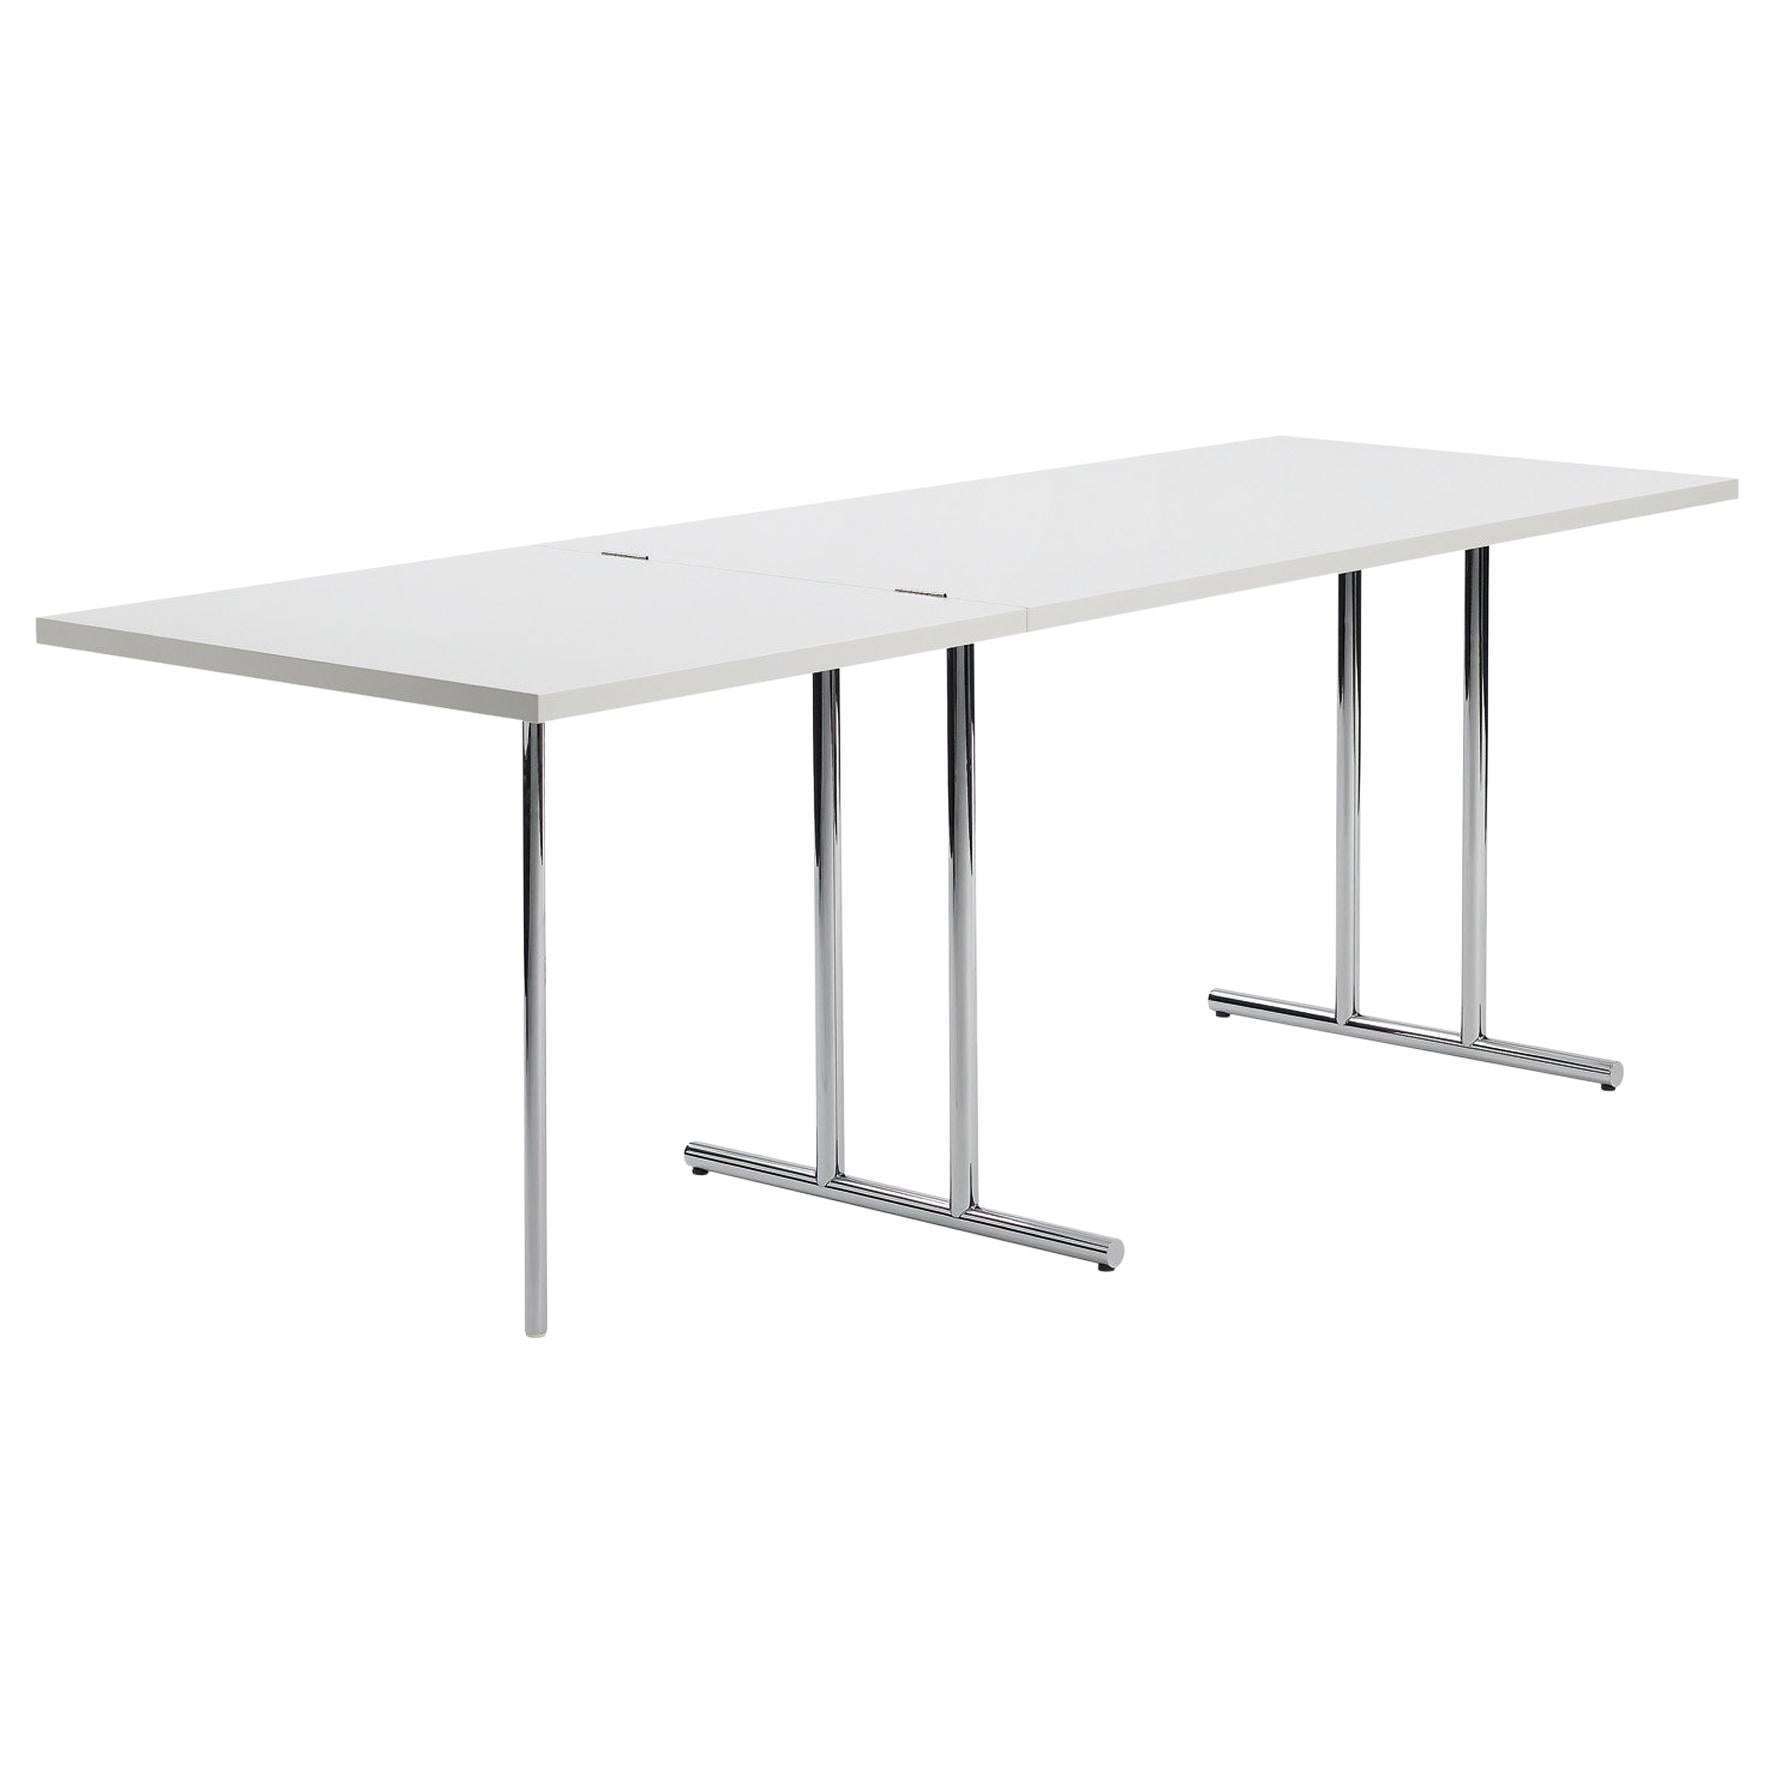 ClassiCon Lou Perou Table in White and Chrome by Eileen Gray